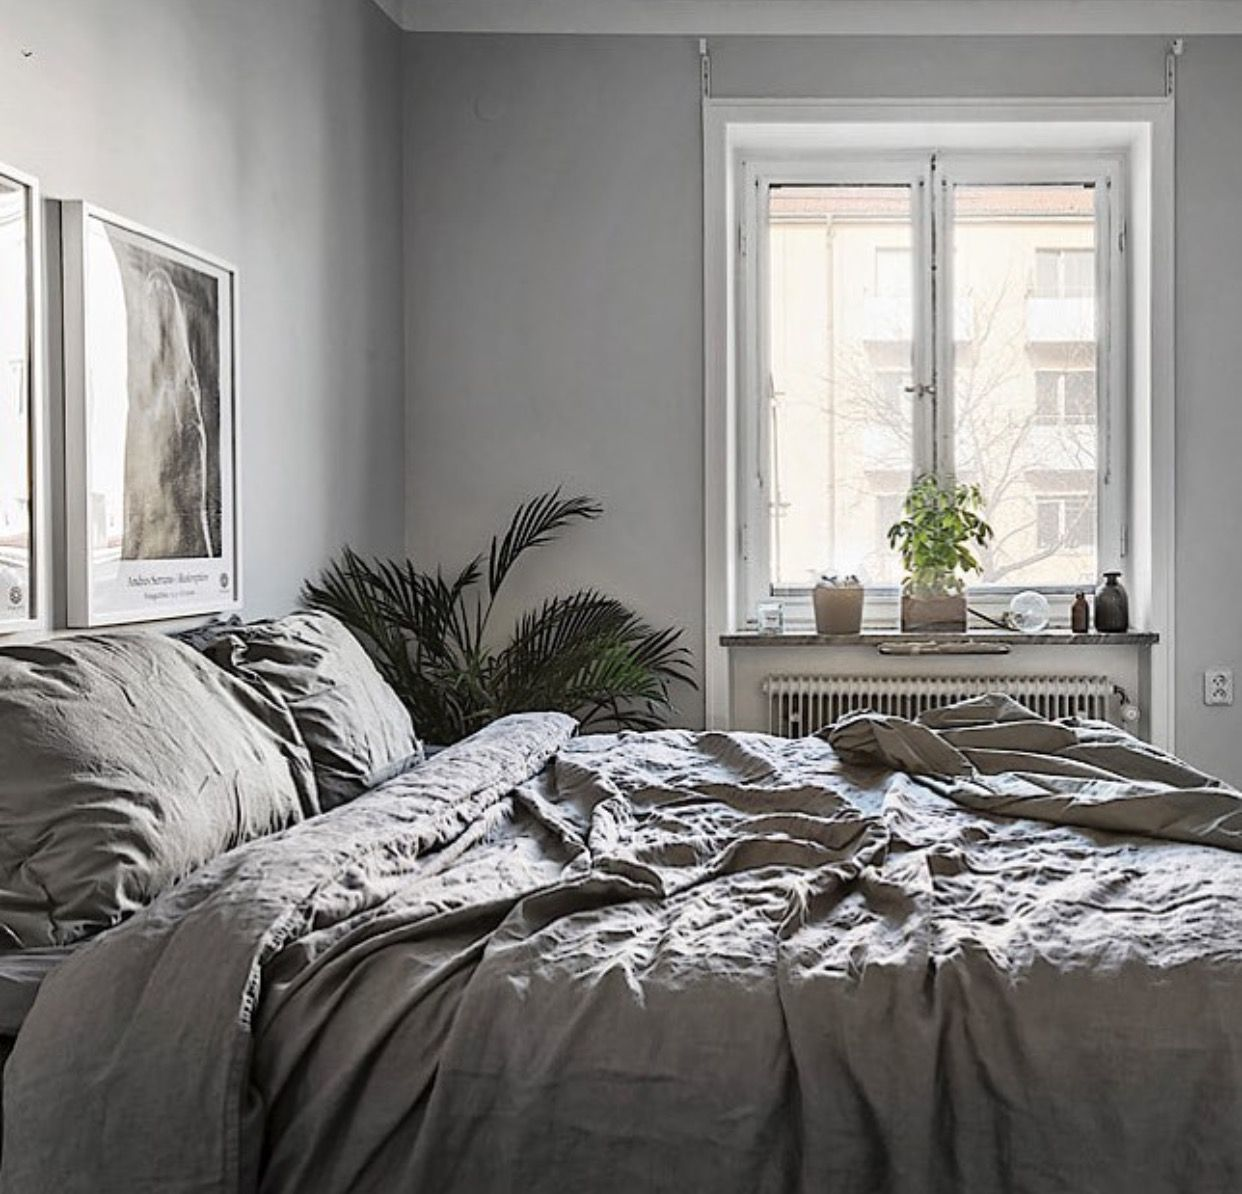 Master bedroom suite decor  Pin by Sasha Simon on комнаты  Pinterest  Bedrooms